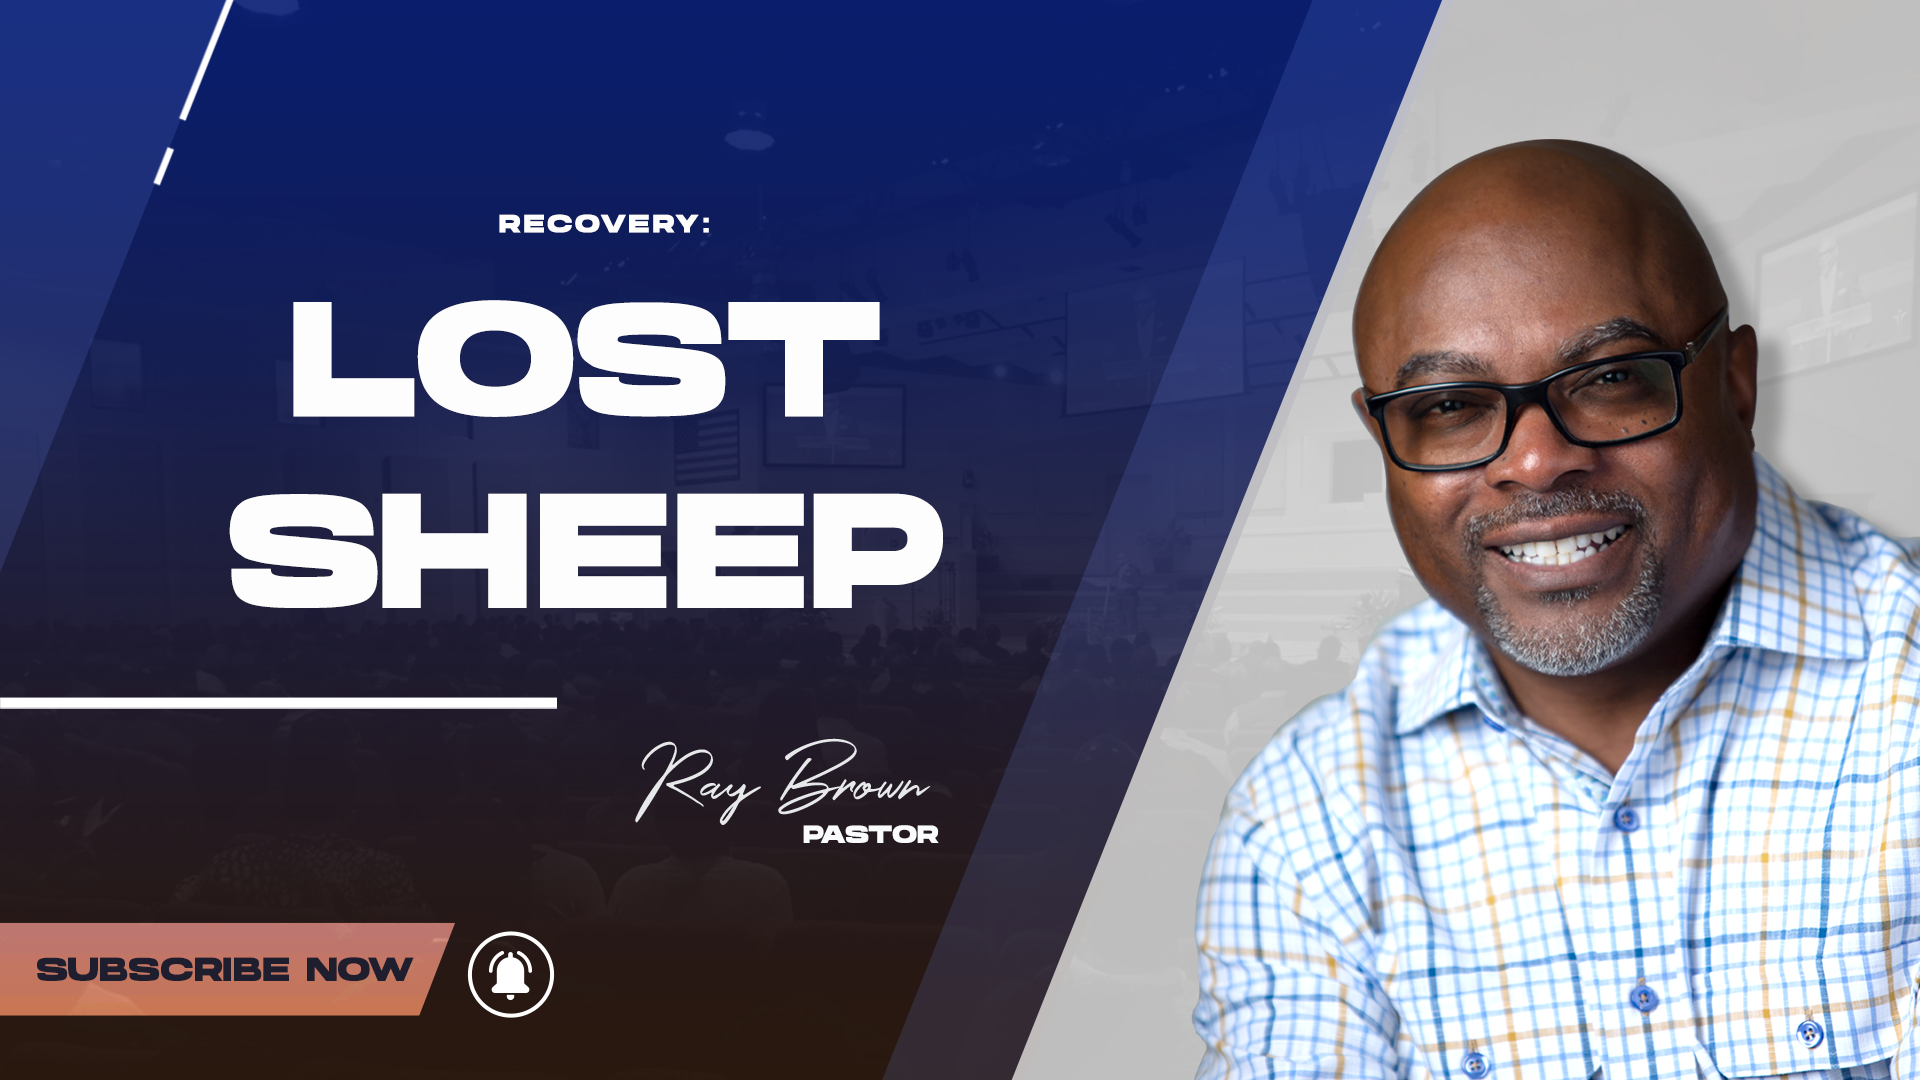 051621 recovery_lost sheep